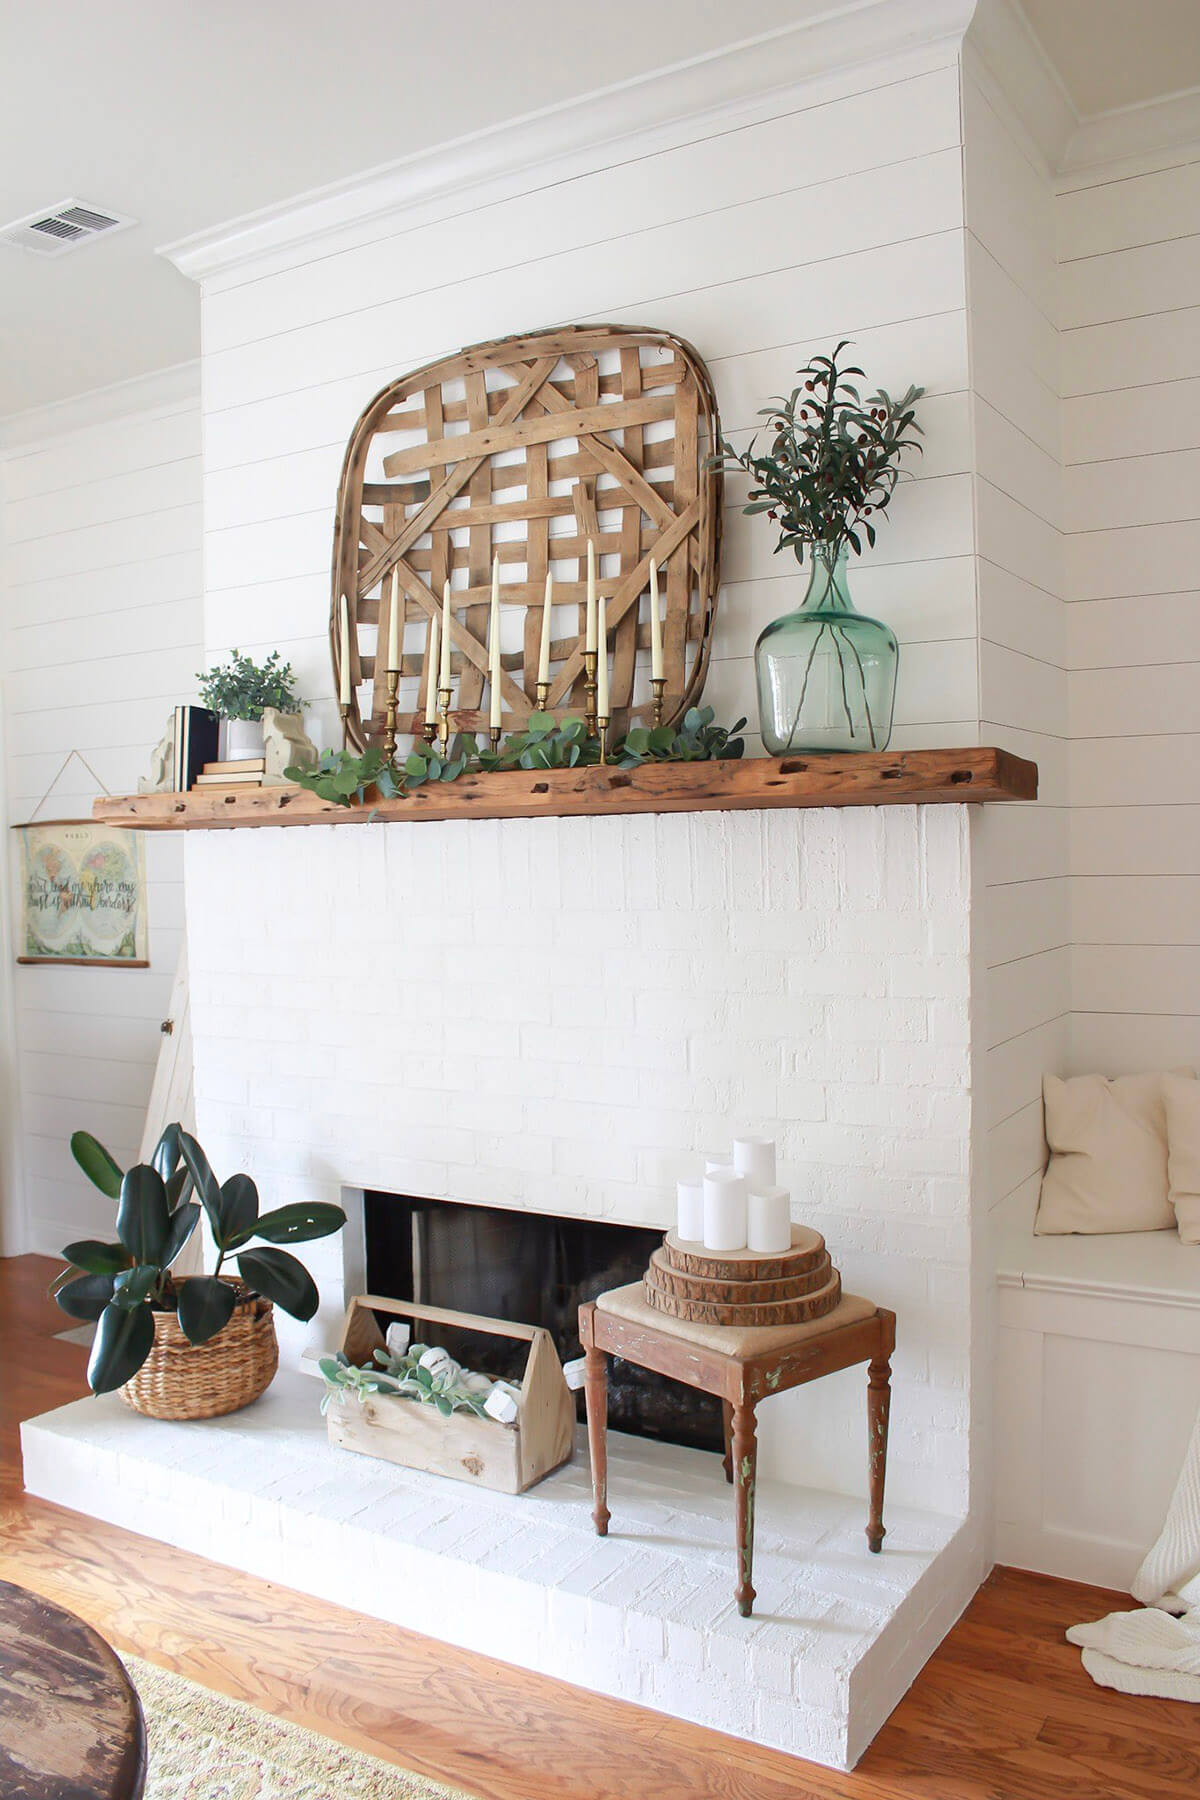 Hearth Arrangement with a Variety of Plants